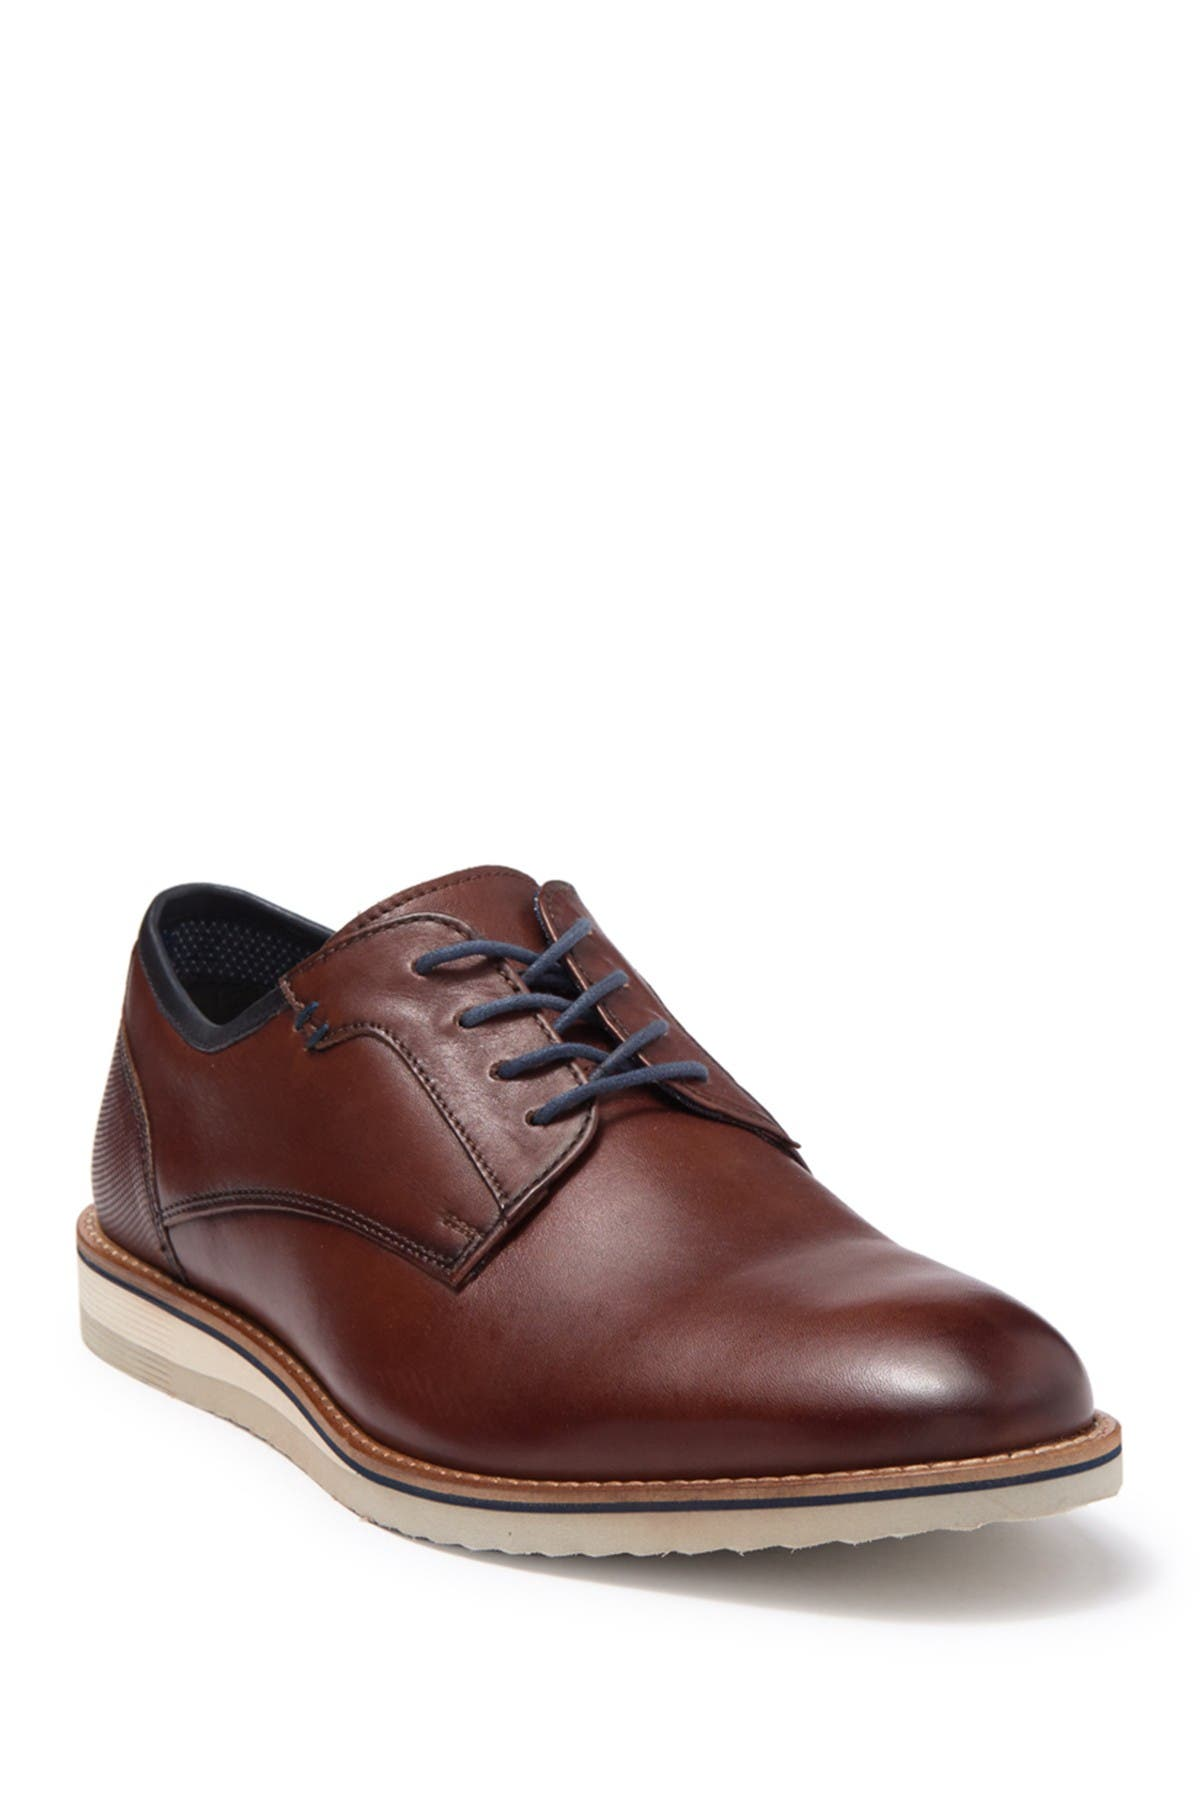 Image of MODERN FICTION Helvetica Leather Plain Toe Derby